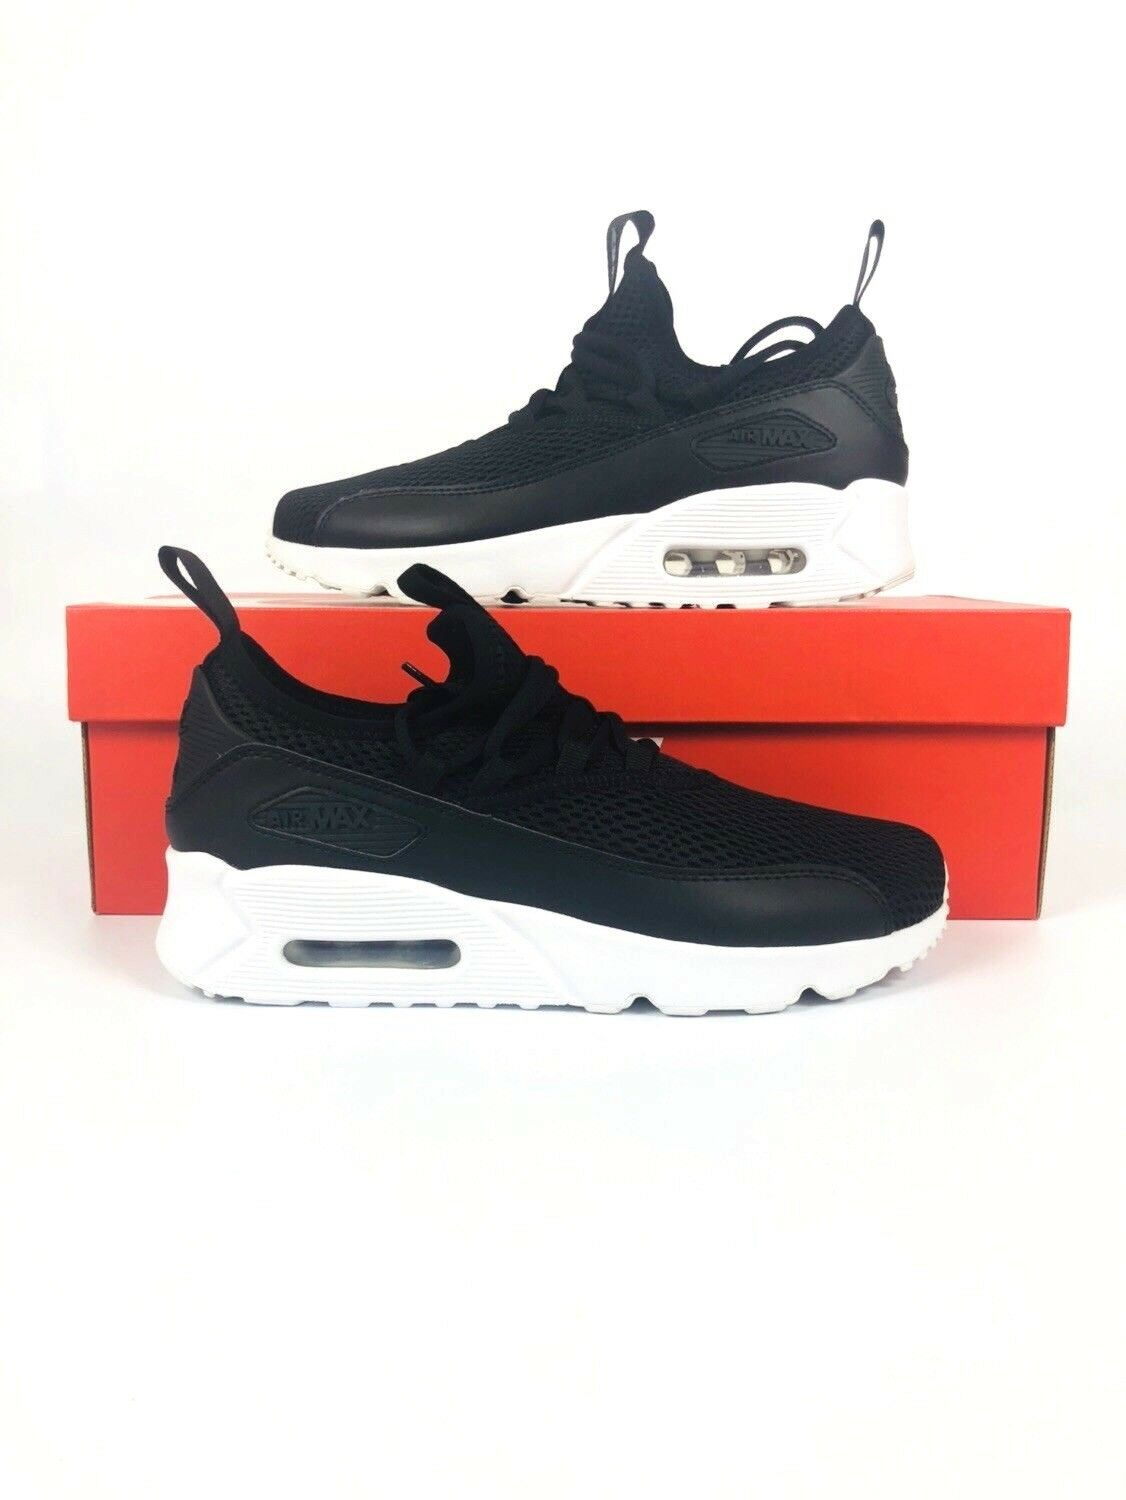 reputable site 2d3f4 e6408 Nike Air Max 90 EZ GS Black White Kids Kids Kids Youth Running Shoes  AH5211-005 b4cce2